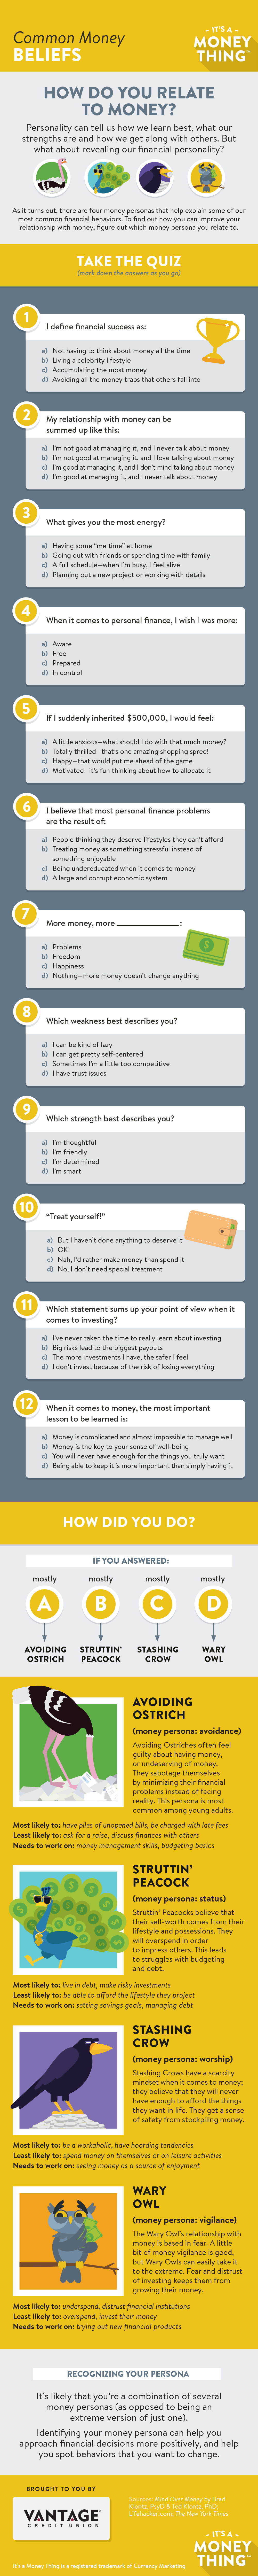 common-money-beliefs-infographic